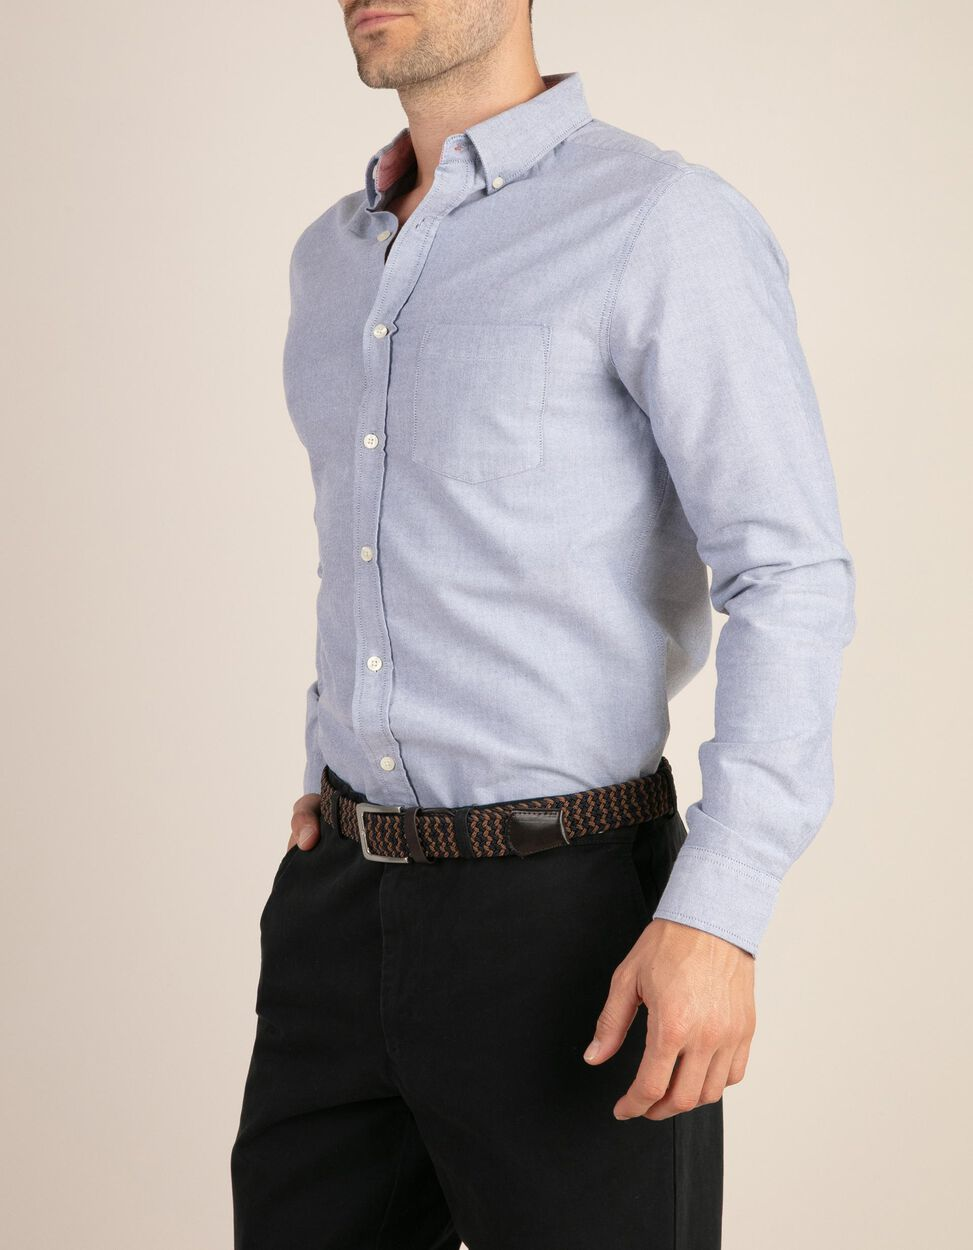 Camisa casual slim fit estilo Oxford